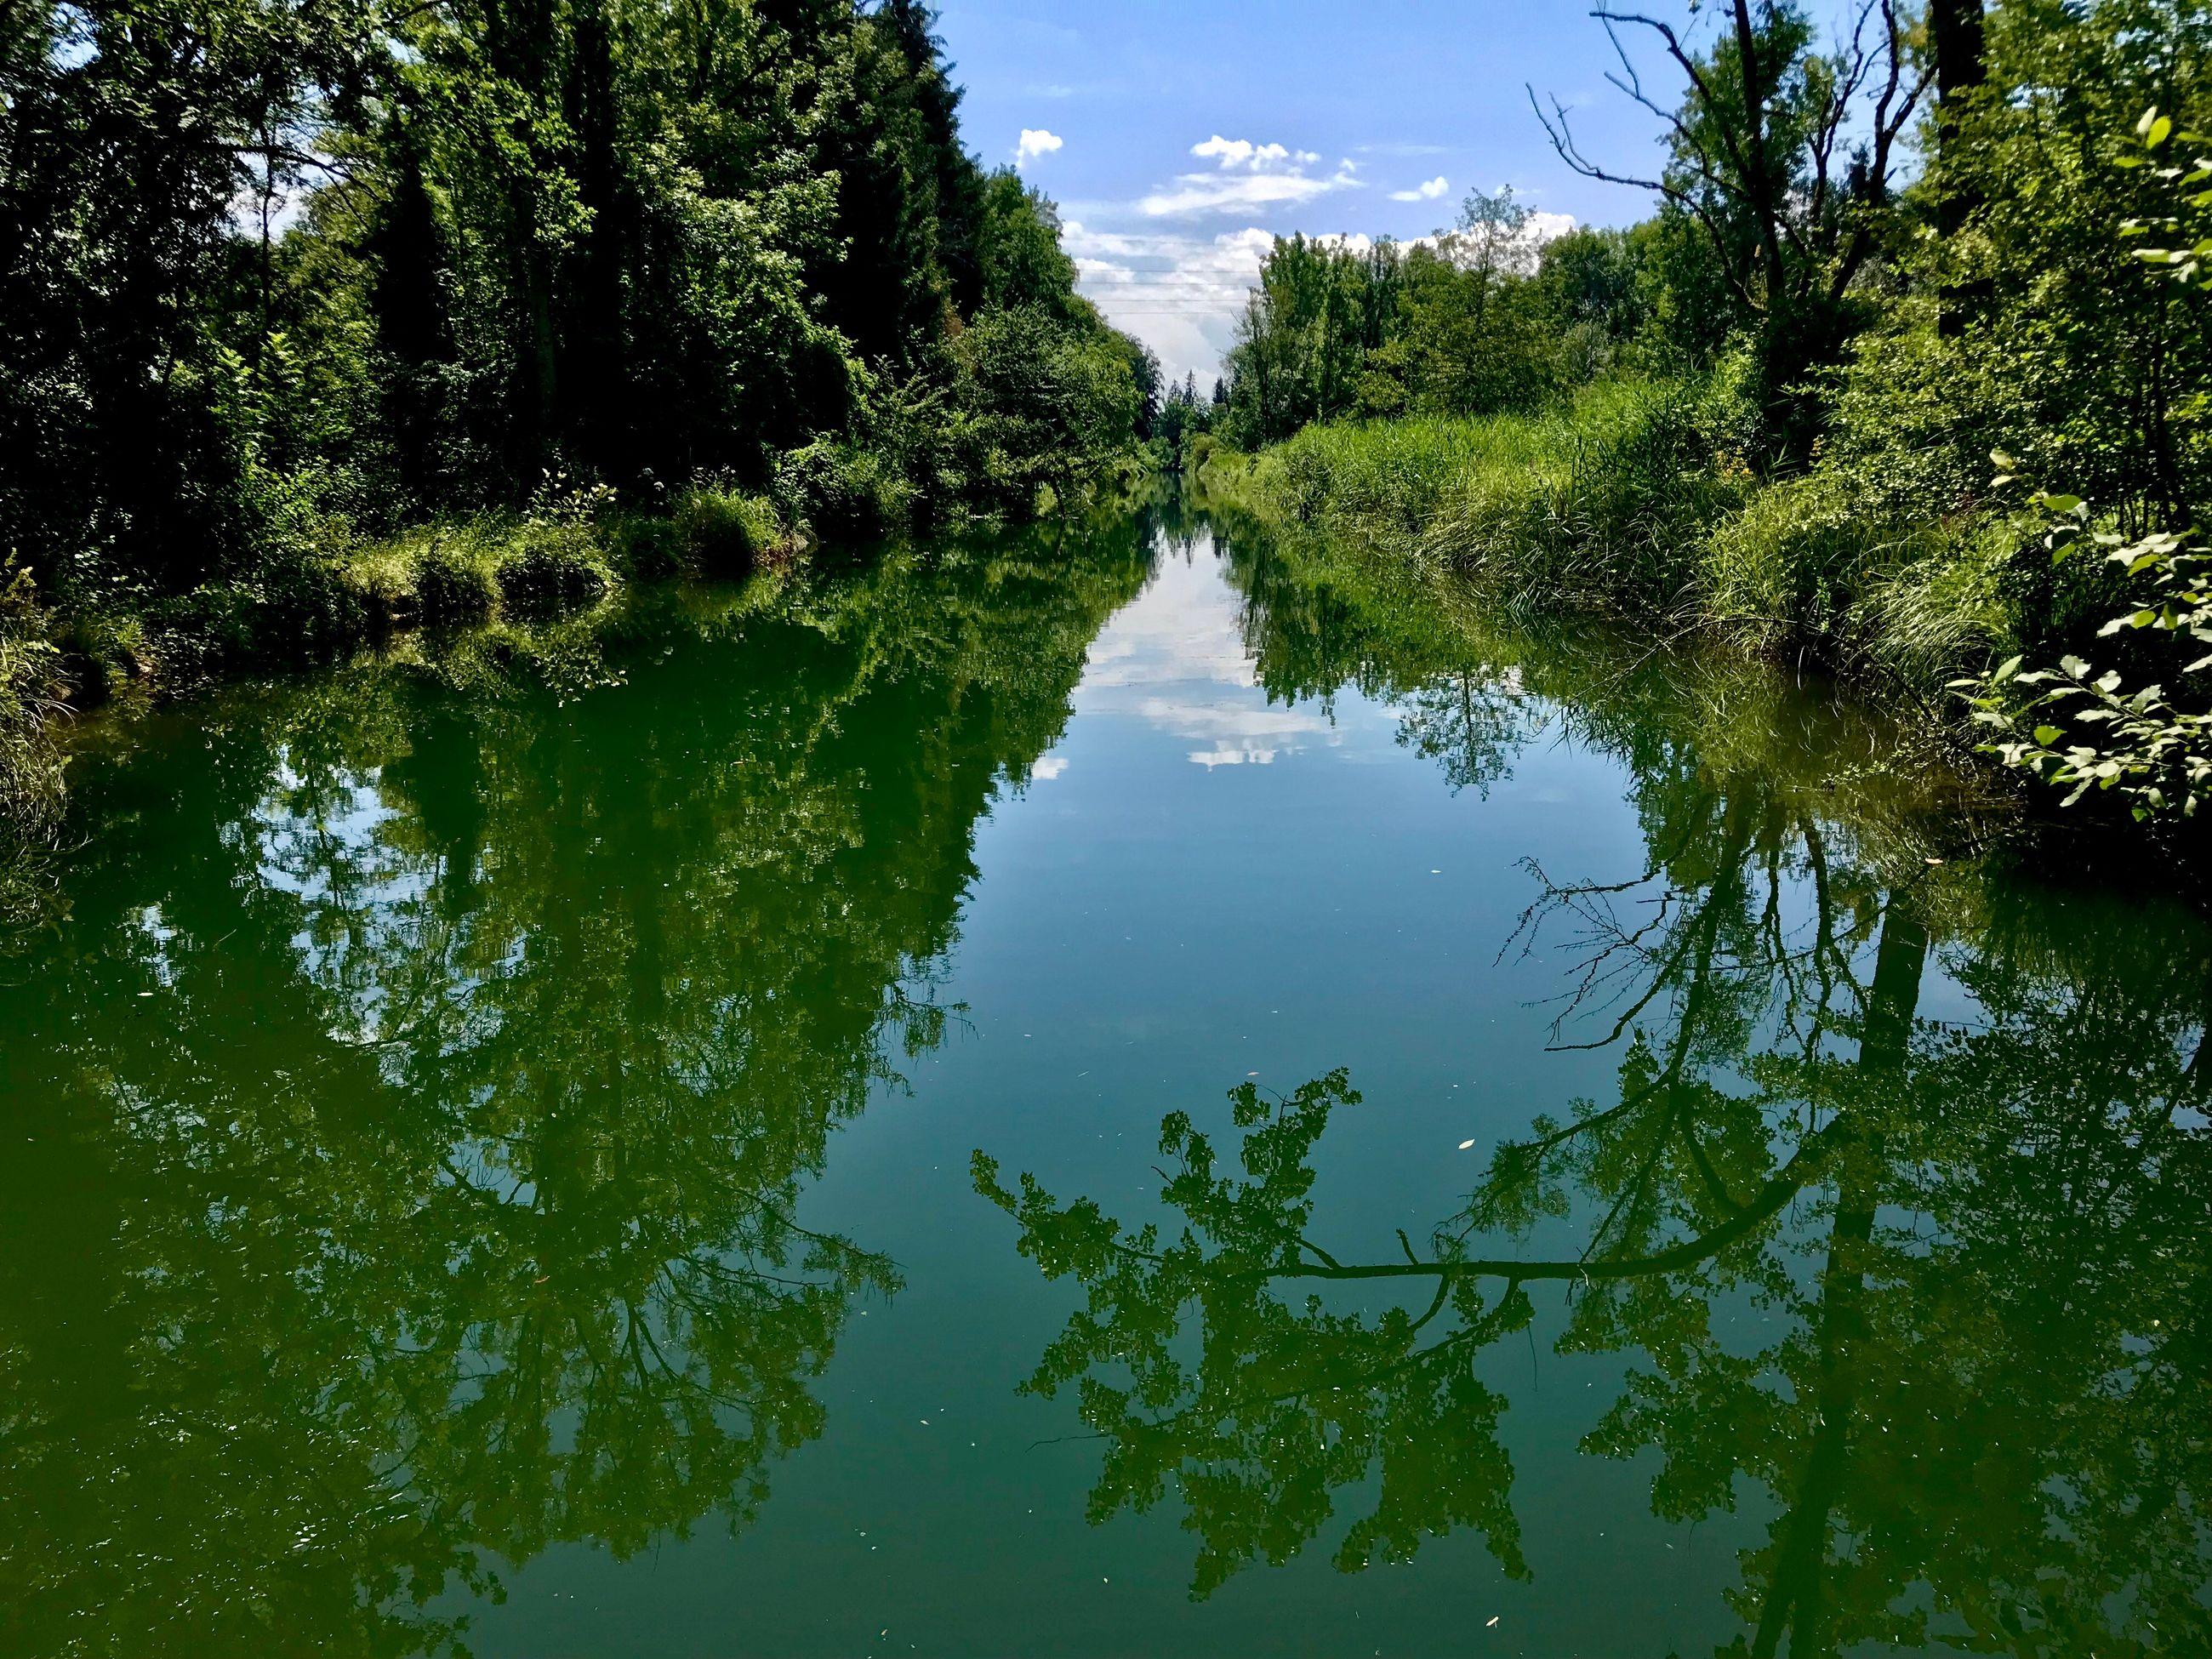 water, plant, reflection, tree, lake, tranquility, nature, tranquil scene, sky, growth, day, green color, no people, scenics - nature, non-urban scene, beauty in nature, waterfront, outdoors, forest